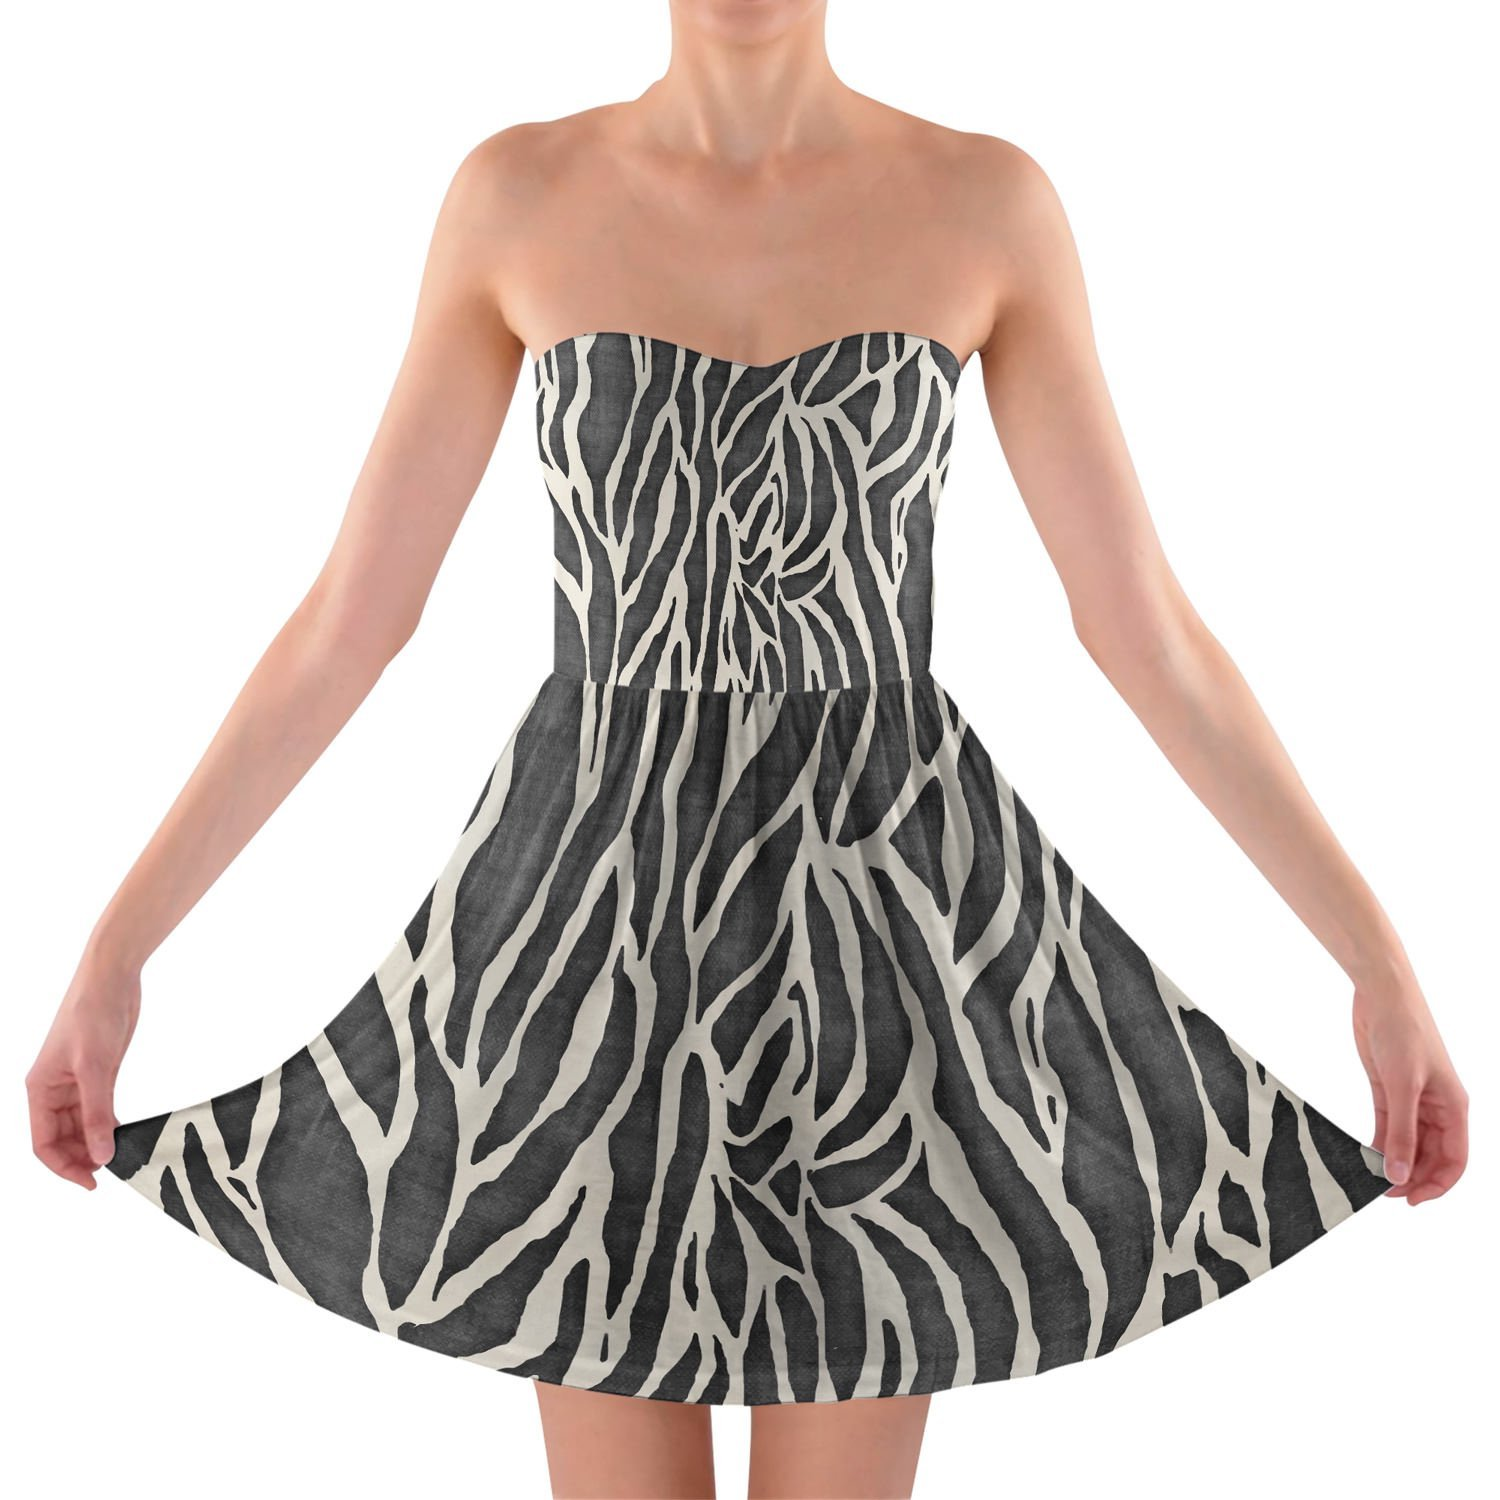 Zebra Print Strapless Bra Top Dress Trägerlos Sommerkleid XS-3XL